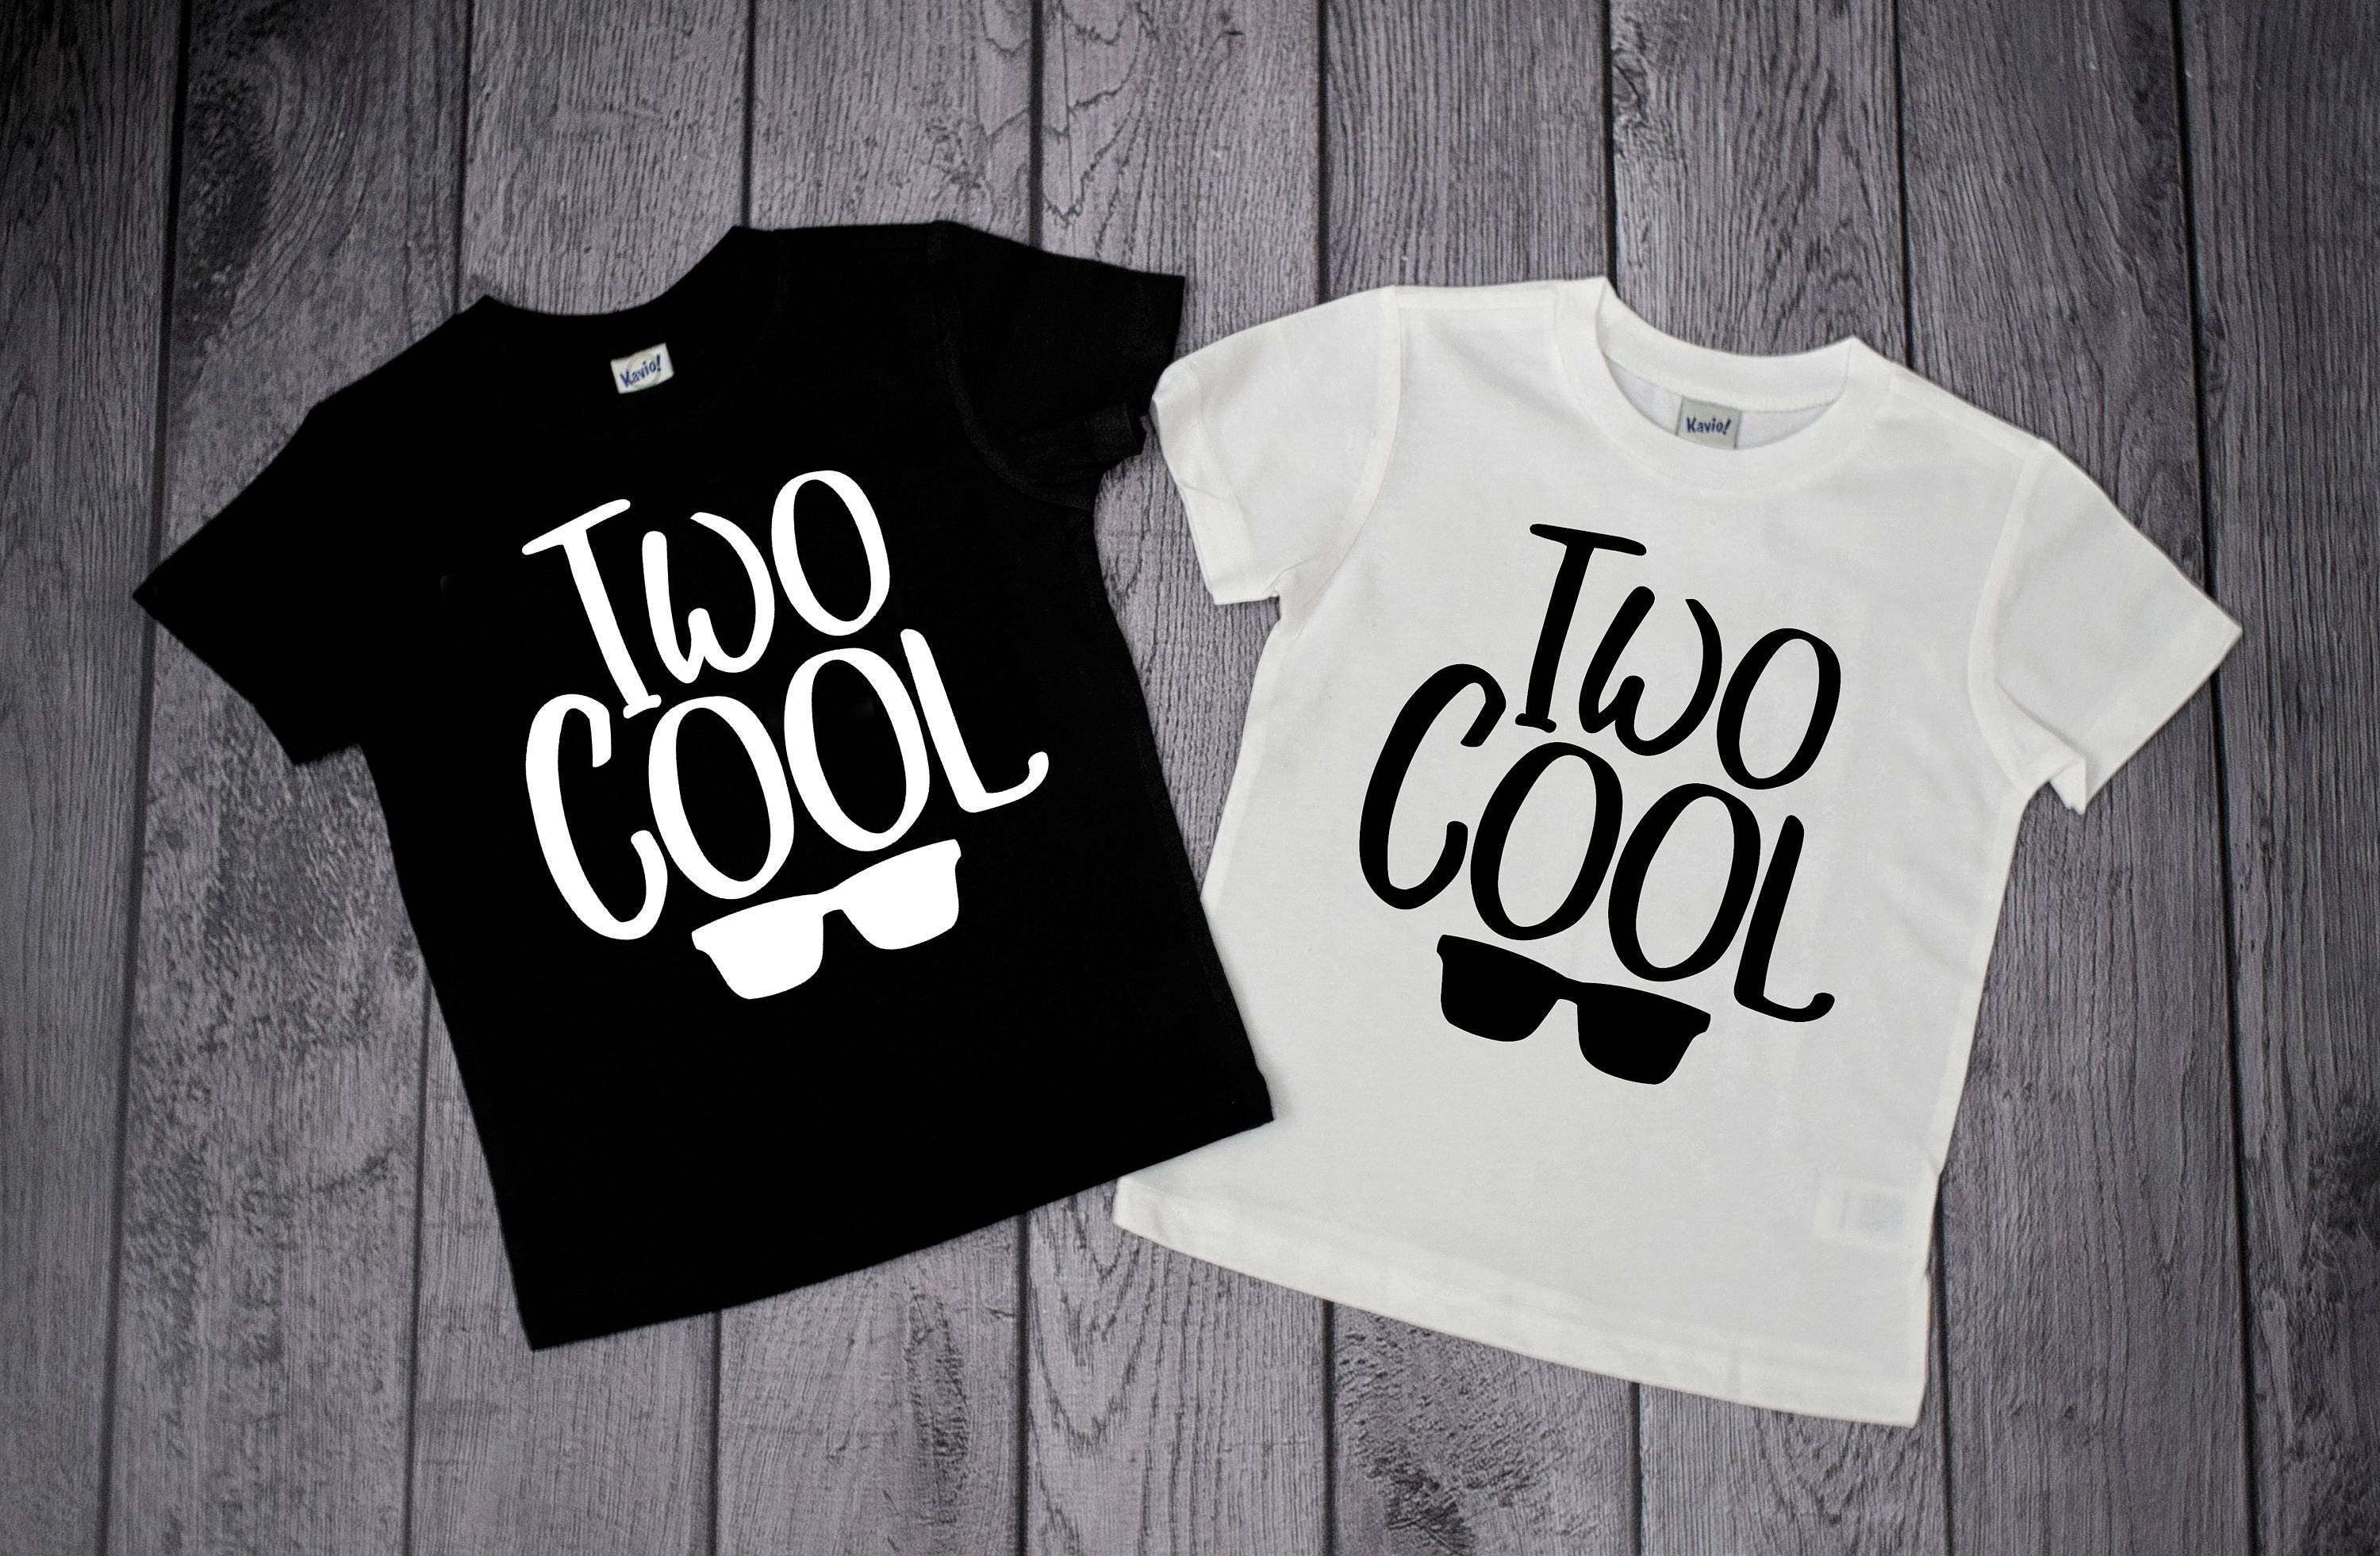 2 Year Old Birthday Shirts Two Cool Boys 2nd